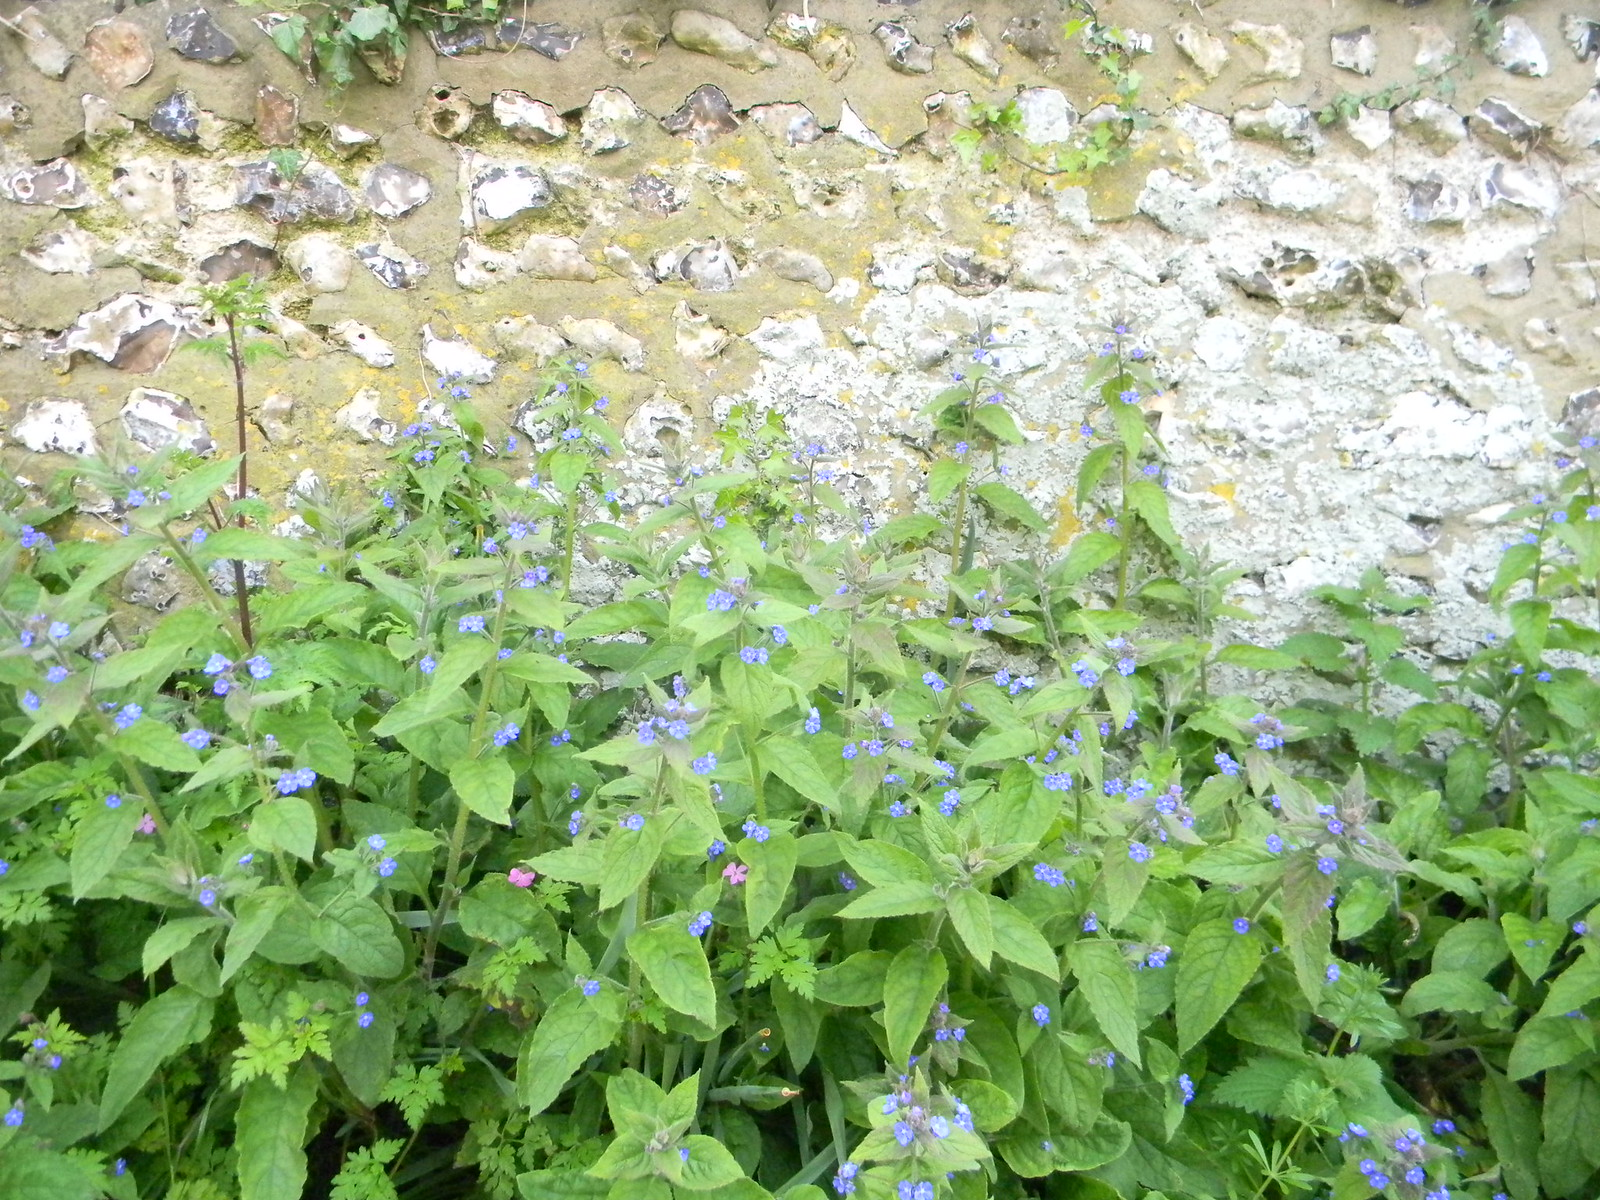 Green Alkanet near Jevington Berwick to Birling Gap